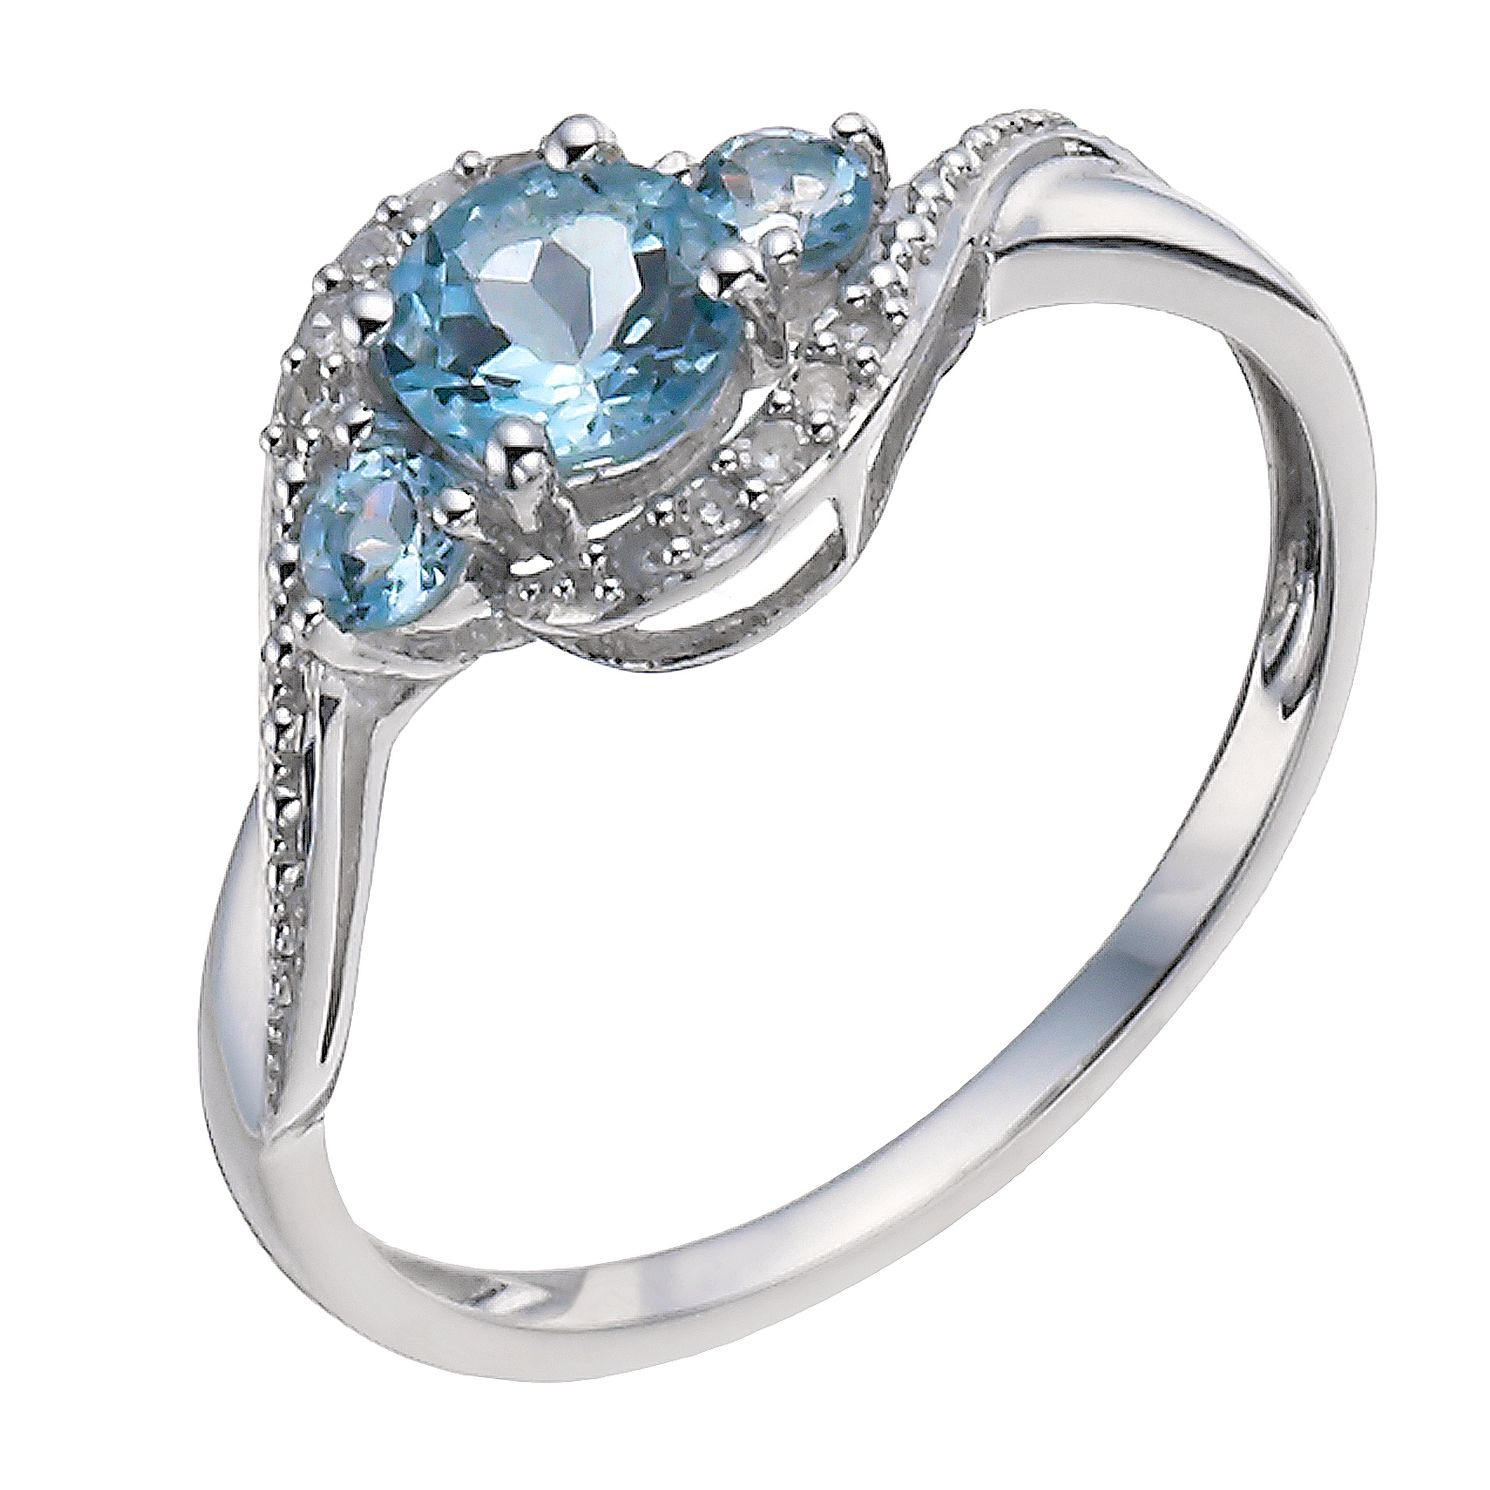 kat london ring jewellery aquamarine venice b img product